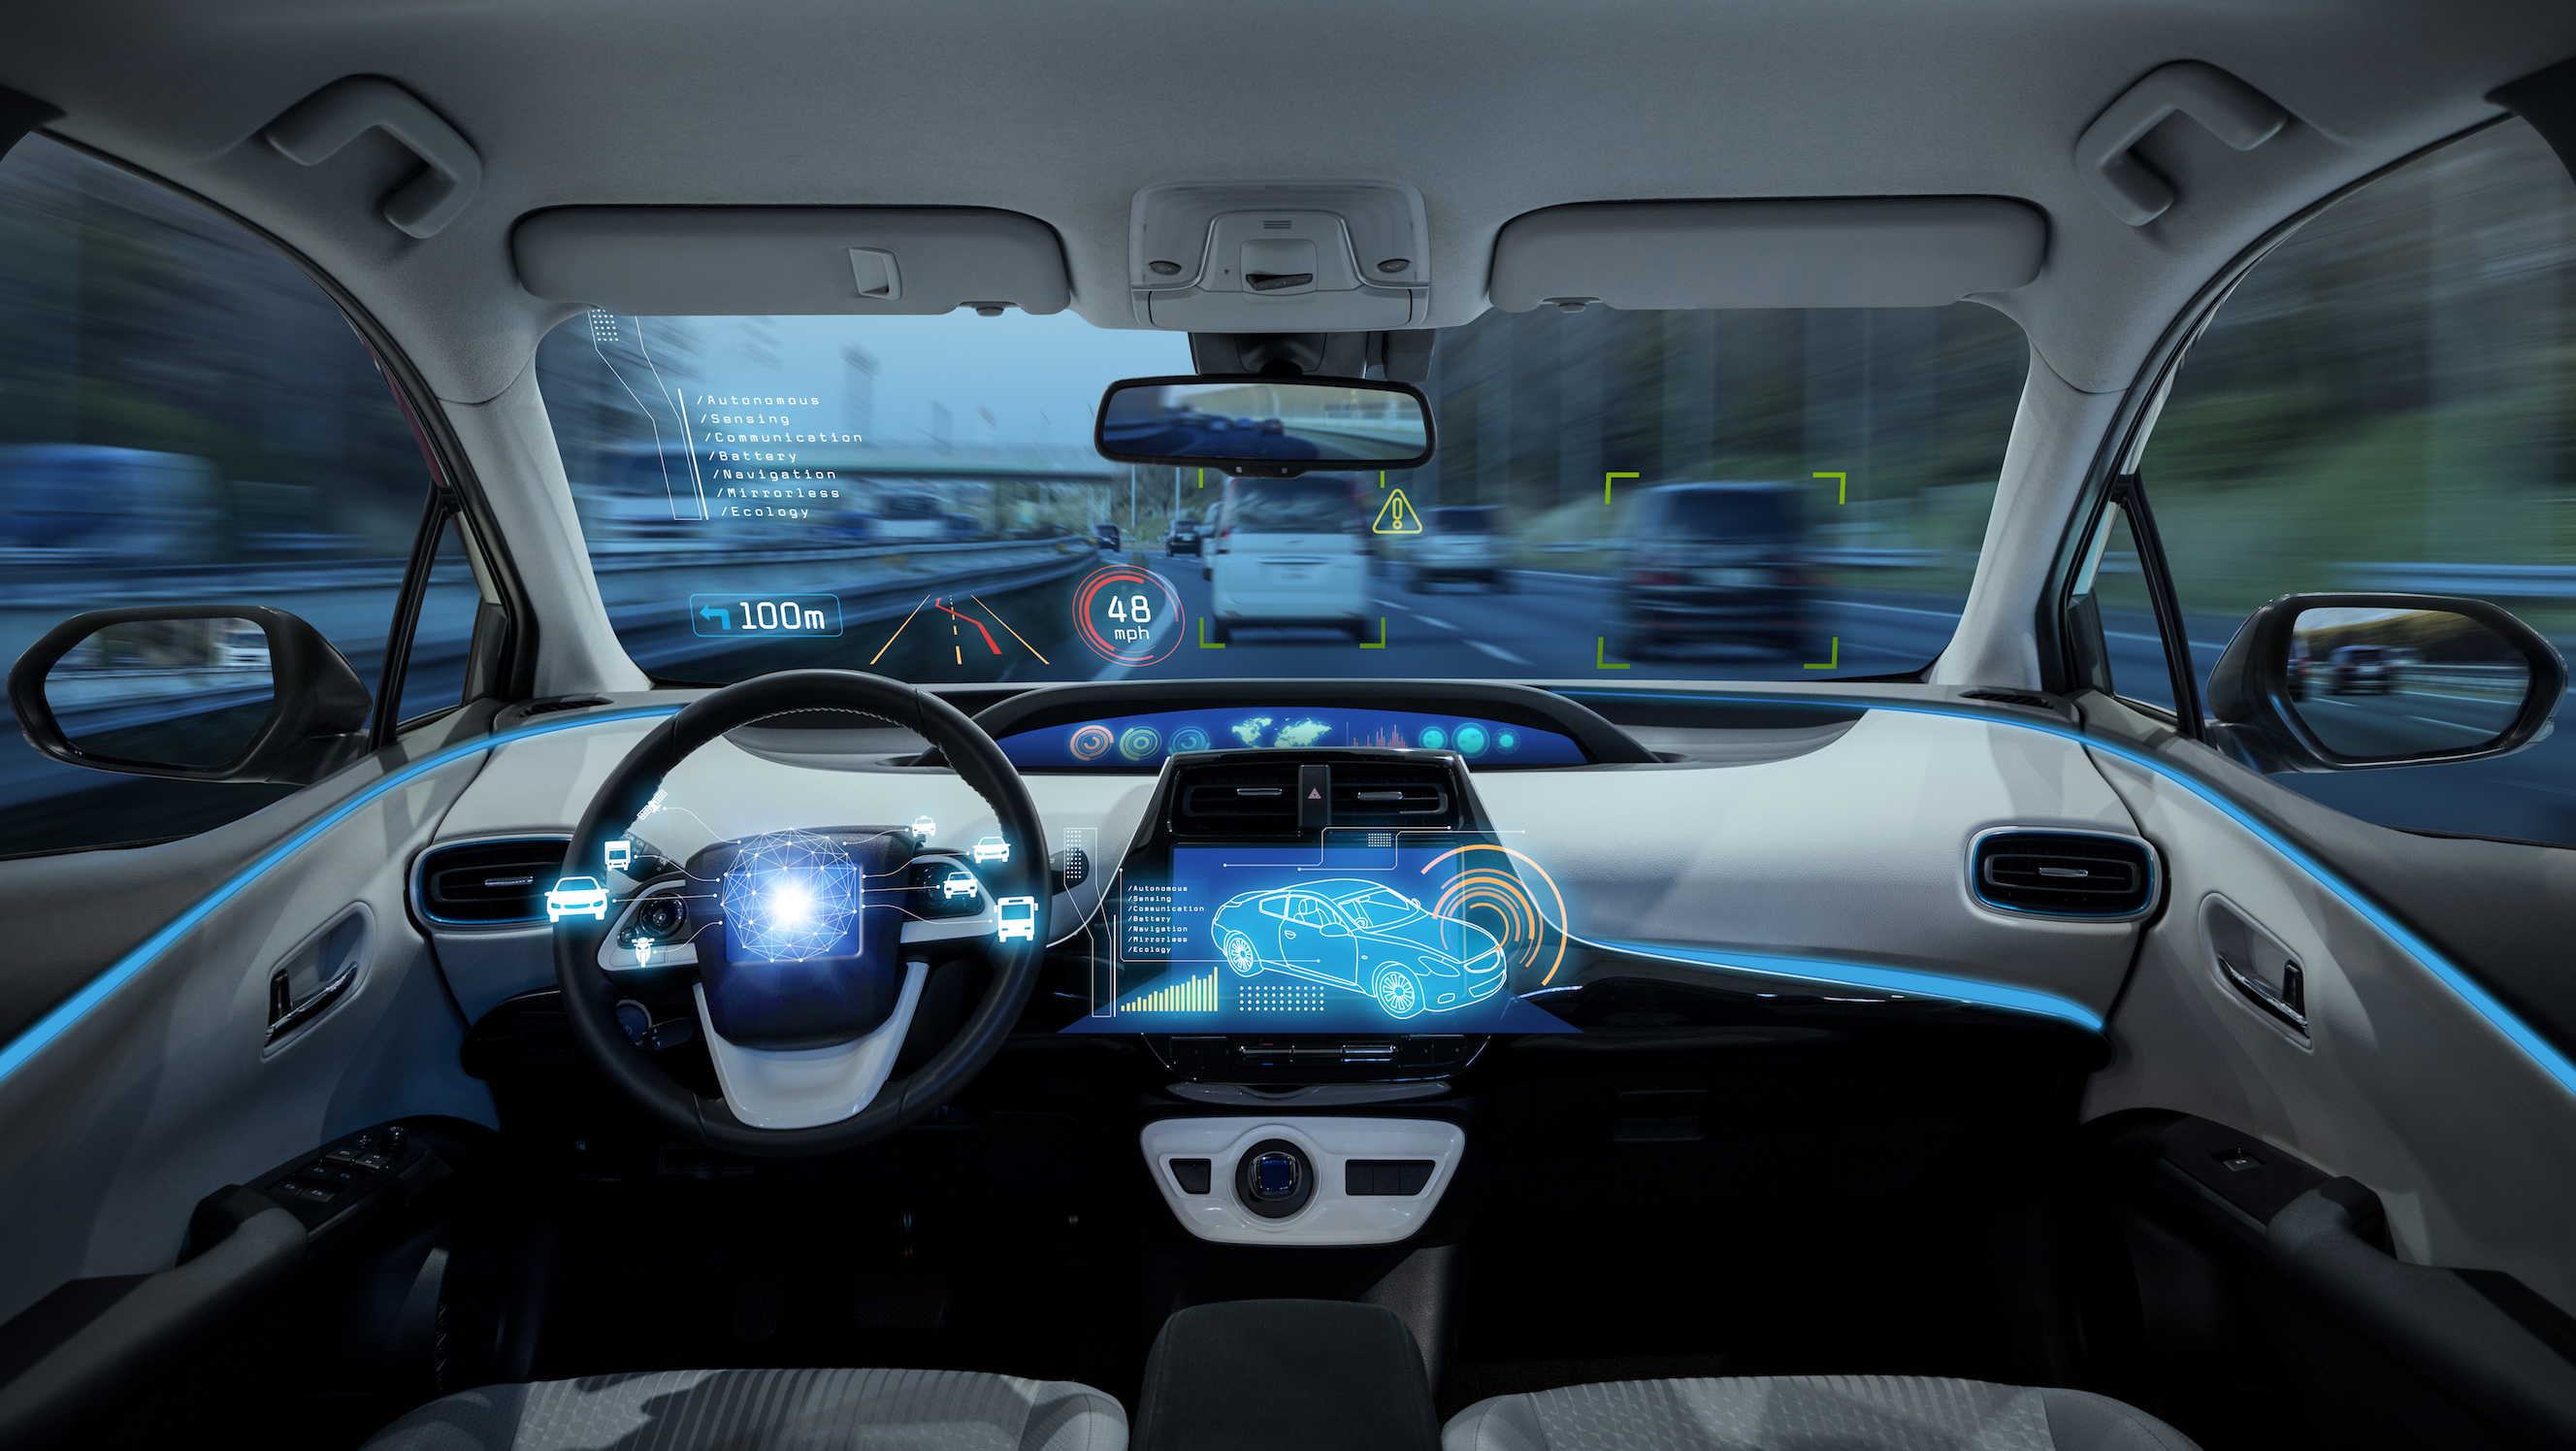 A new study has determined that self-driving cars are actually capable of making moral and ethical decisions.